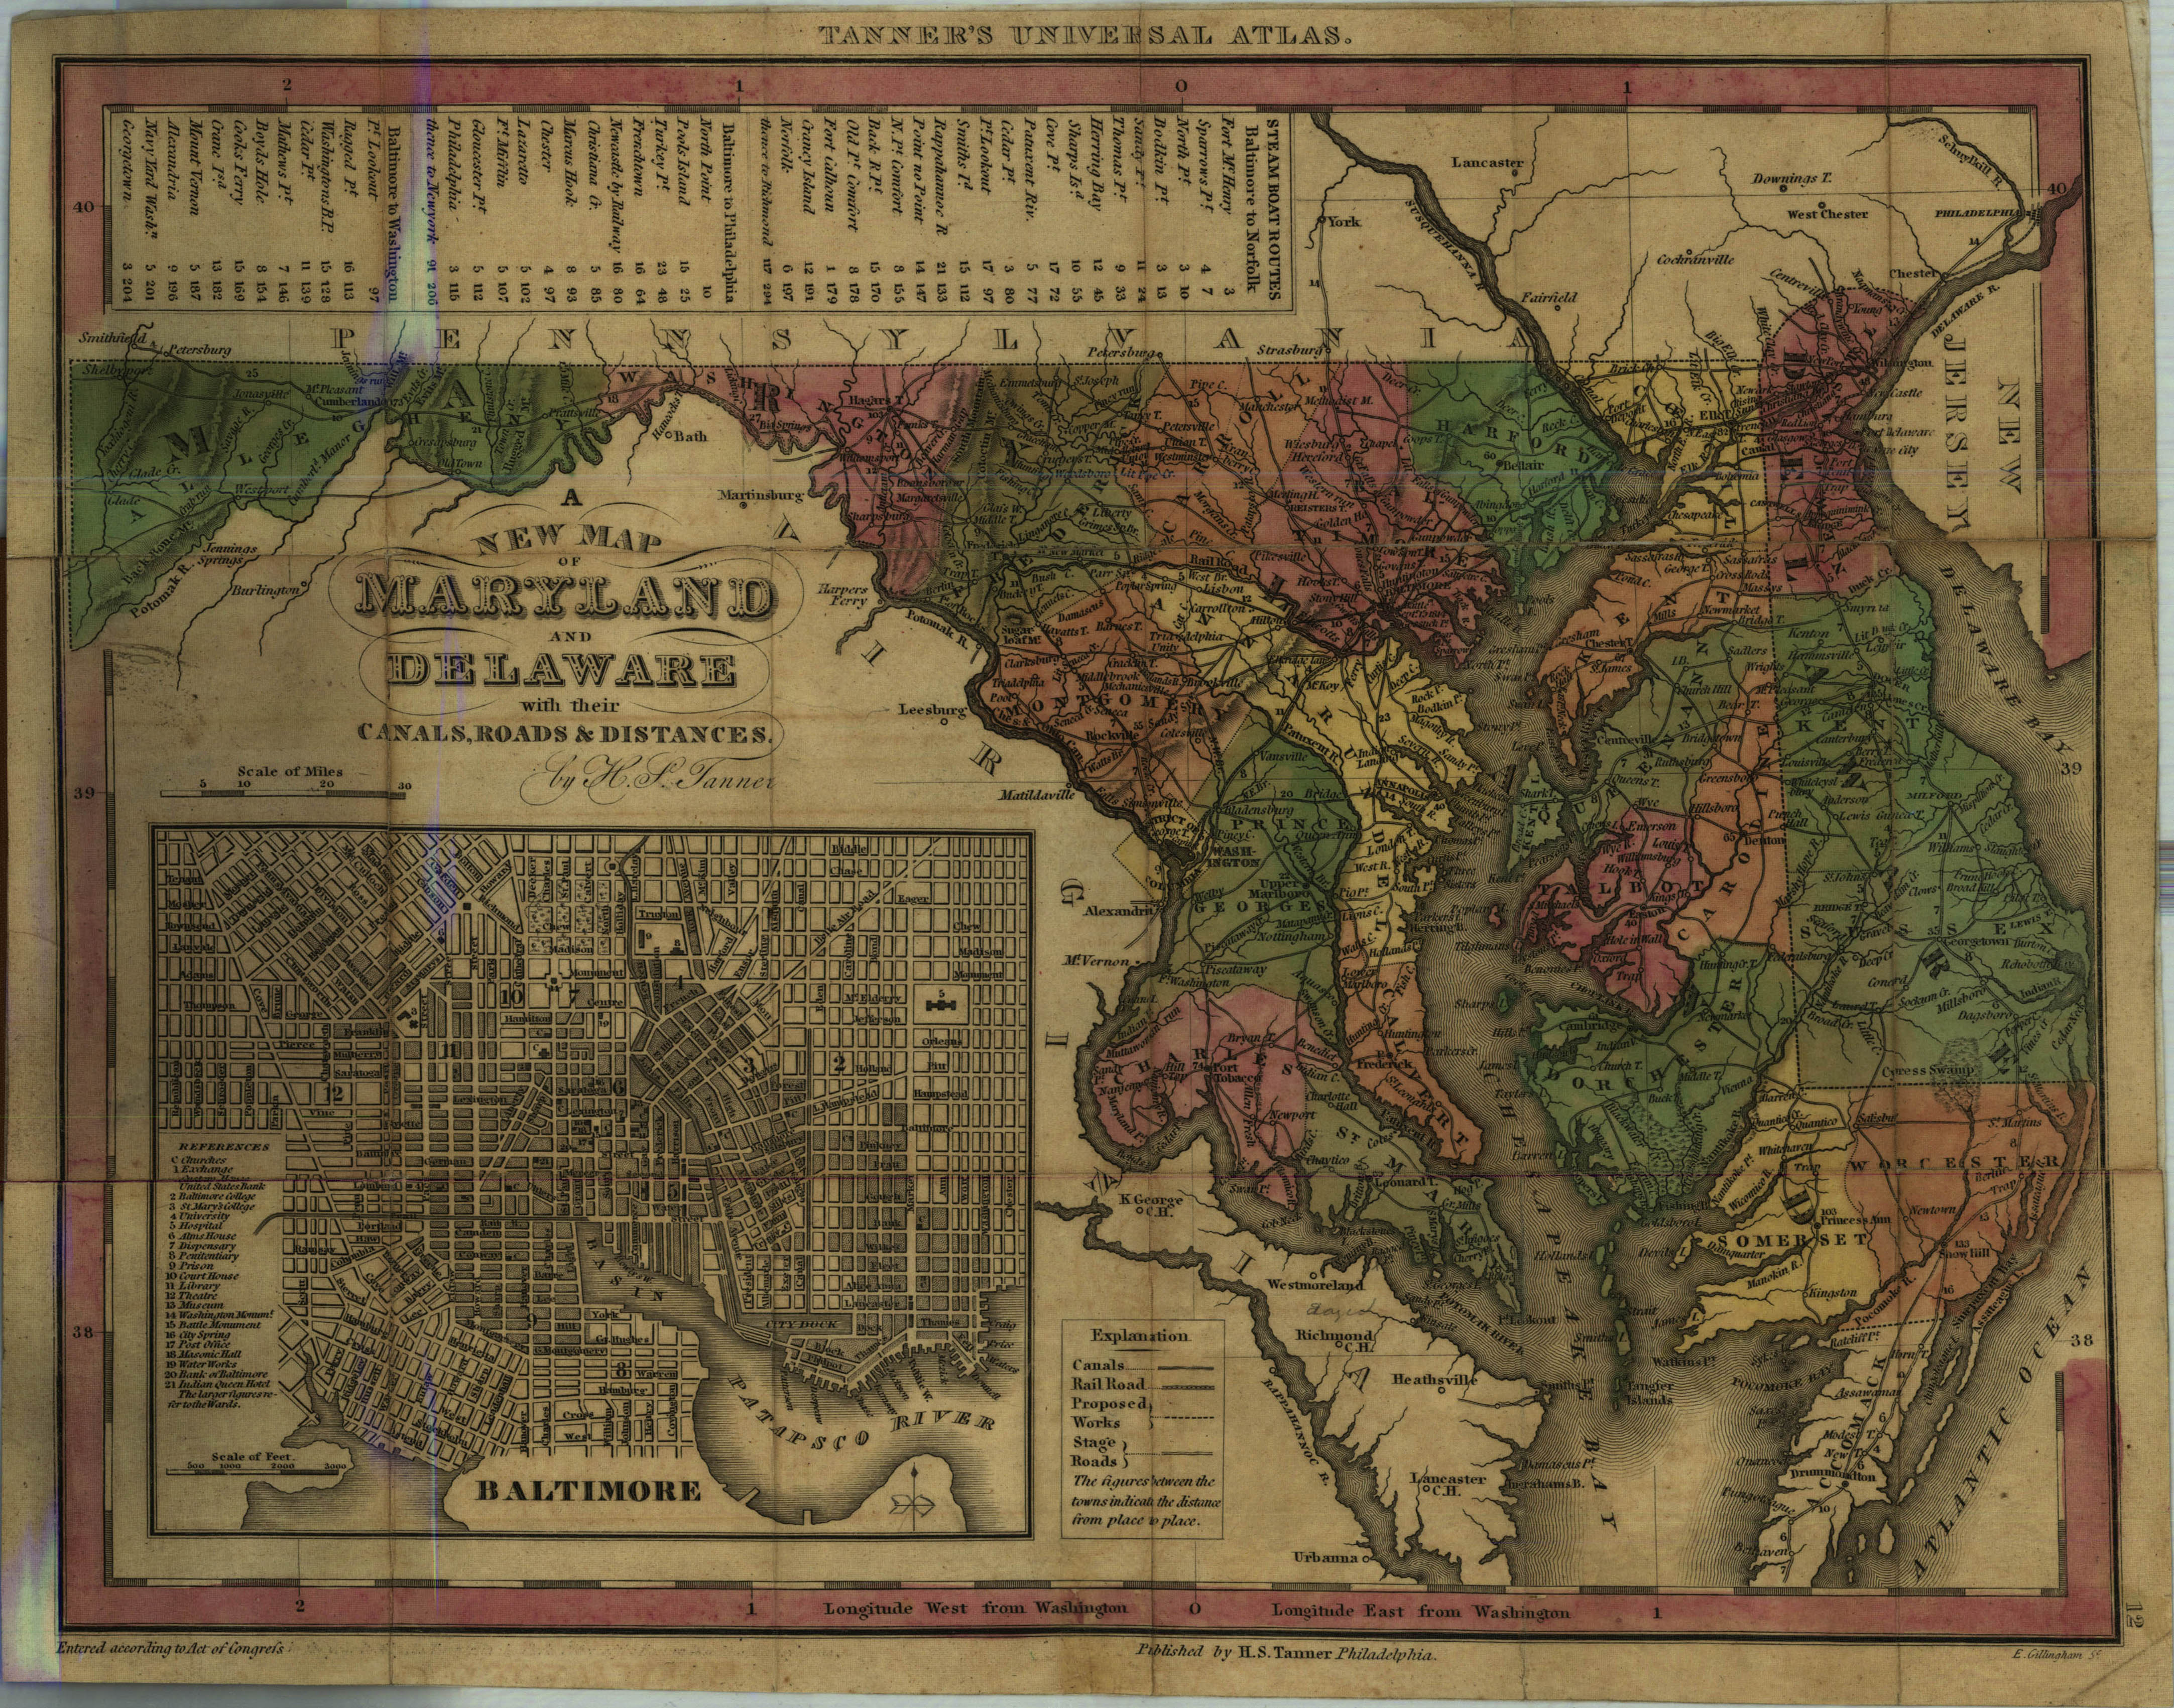 A New Map of Maryland and Delaware: with their canals, roads & distances